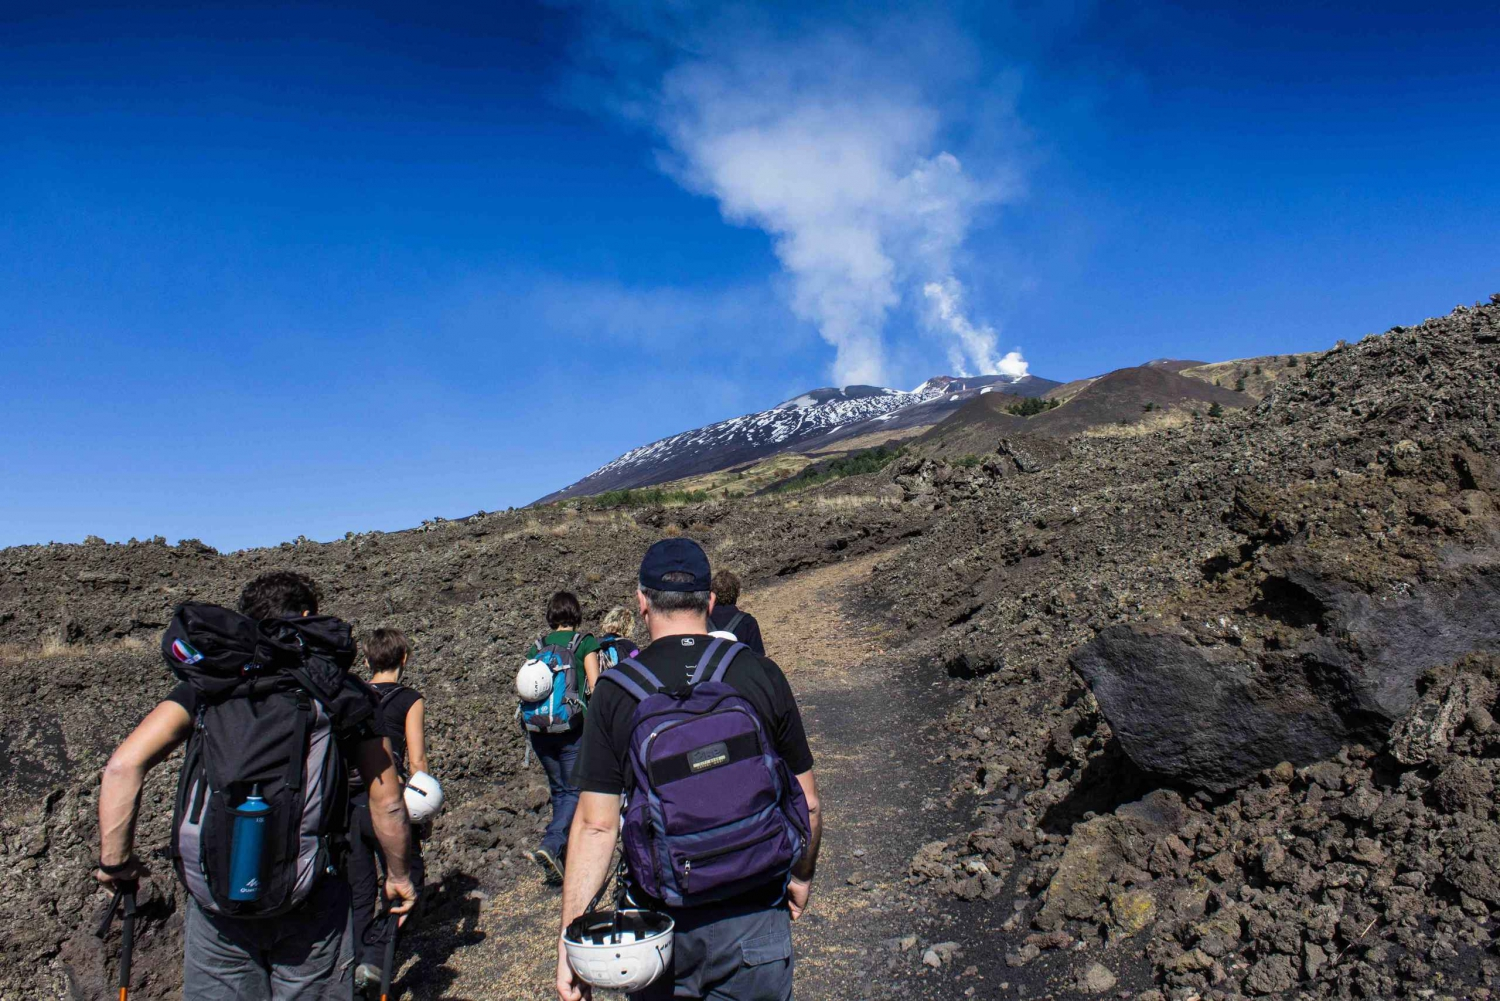 Mount Etna: Soft Trekking in the Recent and Old Lava Flows